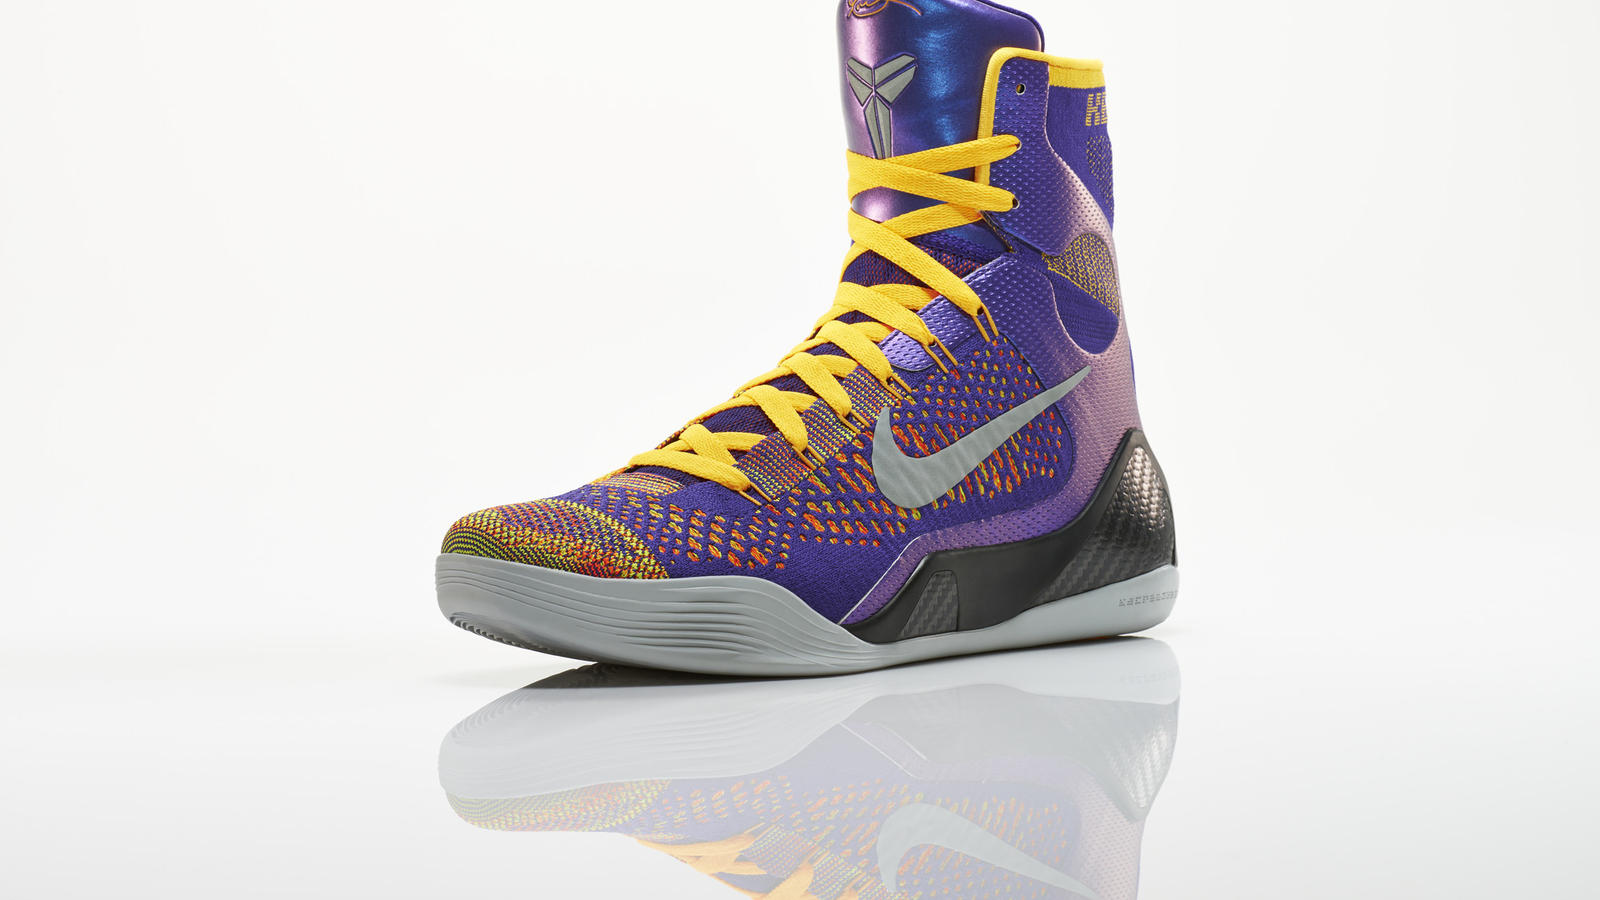 su14_bb_kobe9_elite_630847_500_return_3qtr_16872